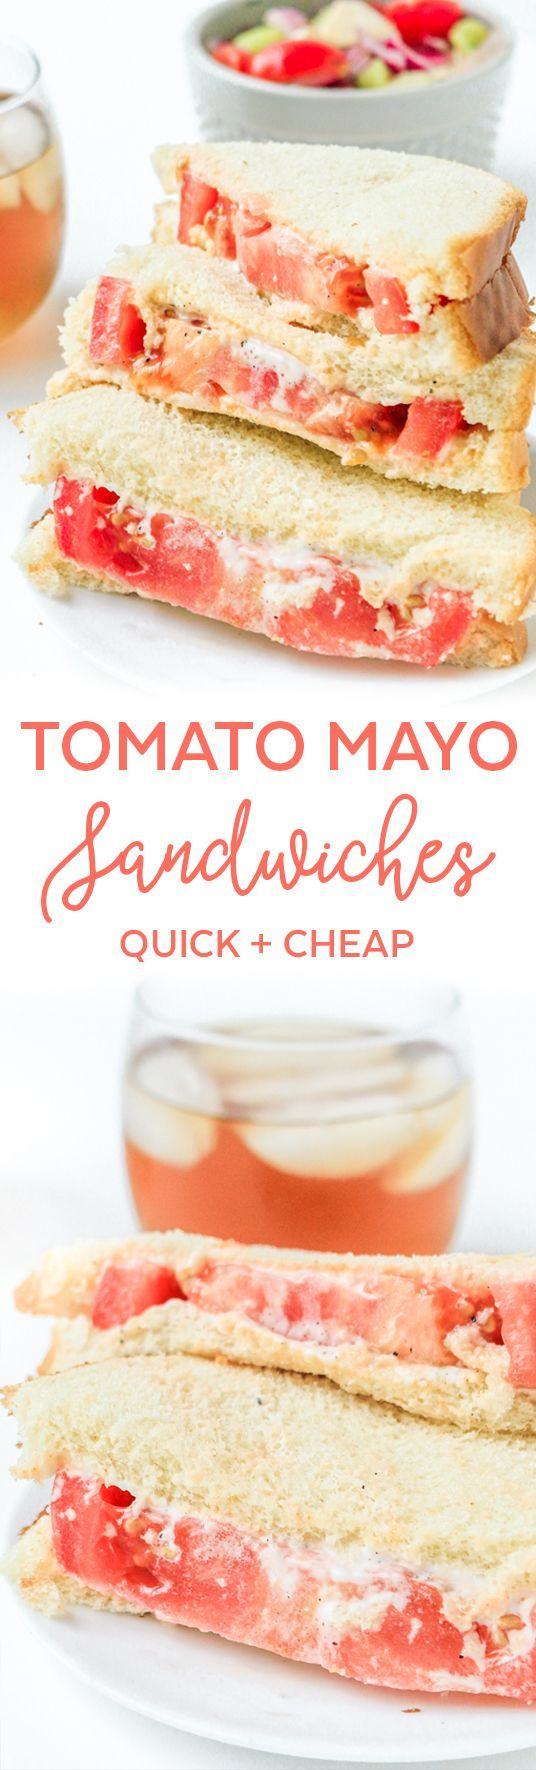 Tomato Mayo Sandwich - Tomato Sandwich Southern - Southern Food Recipes - Classic Southern Recipes - Cheap Meals on a Budget Meals - Cheap Meals Under $5 Frugal Meals for Two